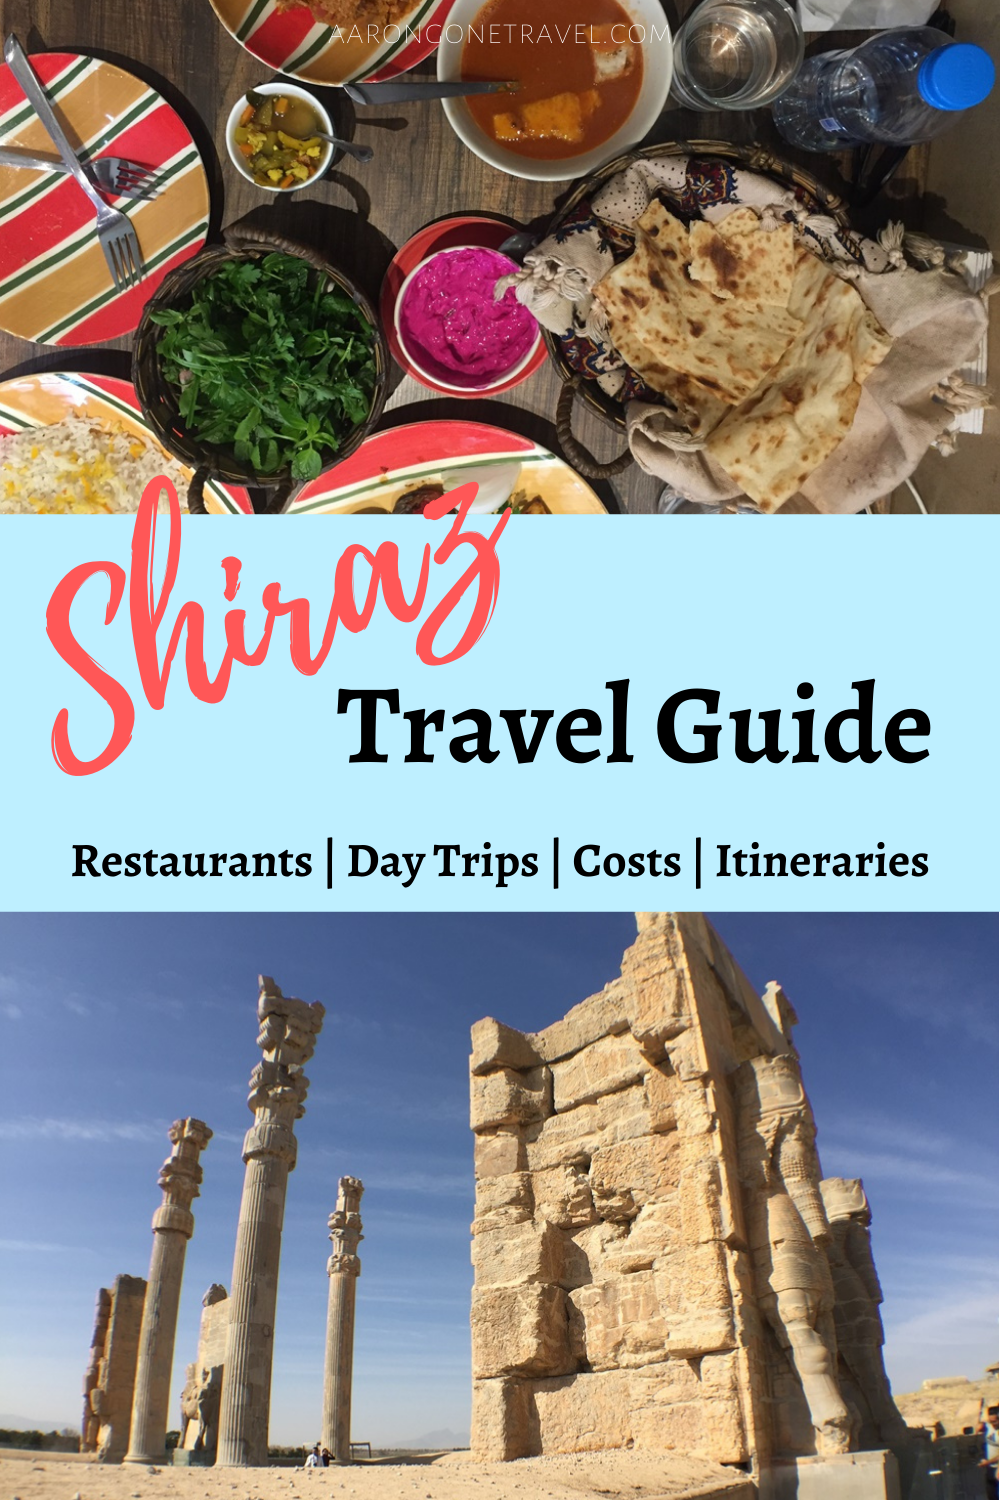 Going to Shiraz soon? Make sure you check this ultimate Shiraz Travel Guide out! This travel guide carefully curates all the top attractions in Shiraz, best restaurants in Shiraz, day trips in Shiraz and the cost of travel in Shiraz. #shiraziran #irantravel #shiraztravelguide #iran #shiraz